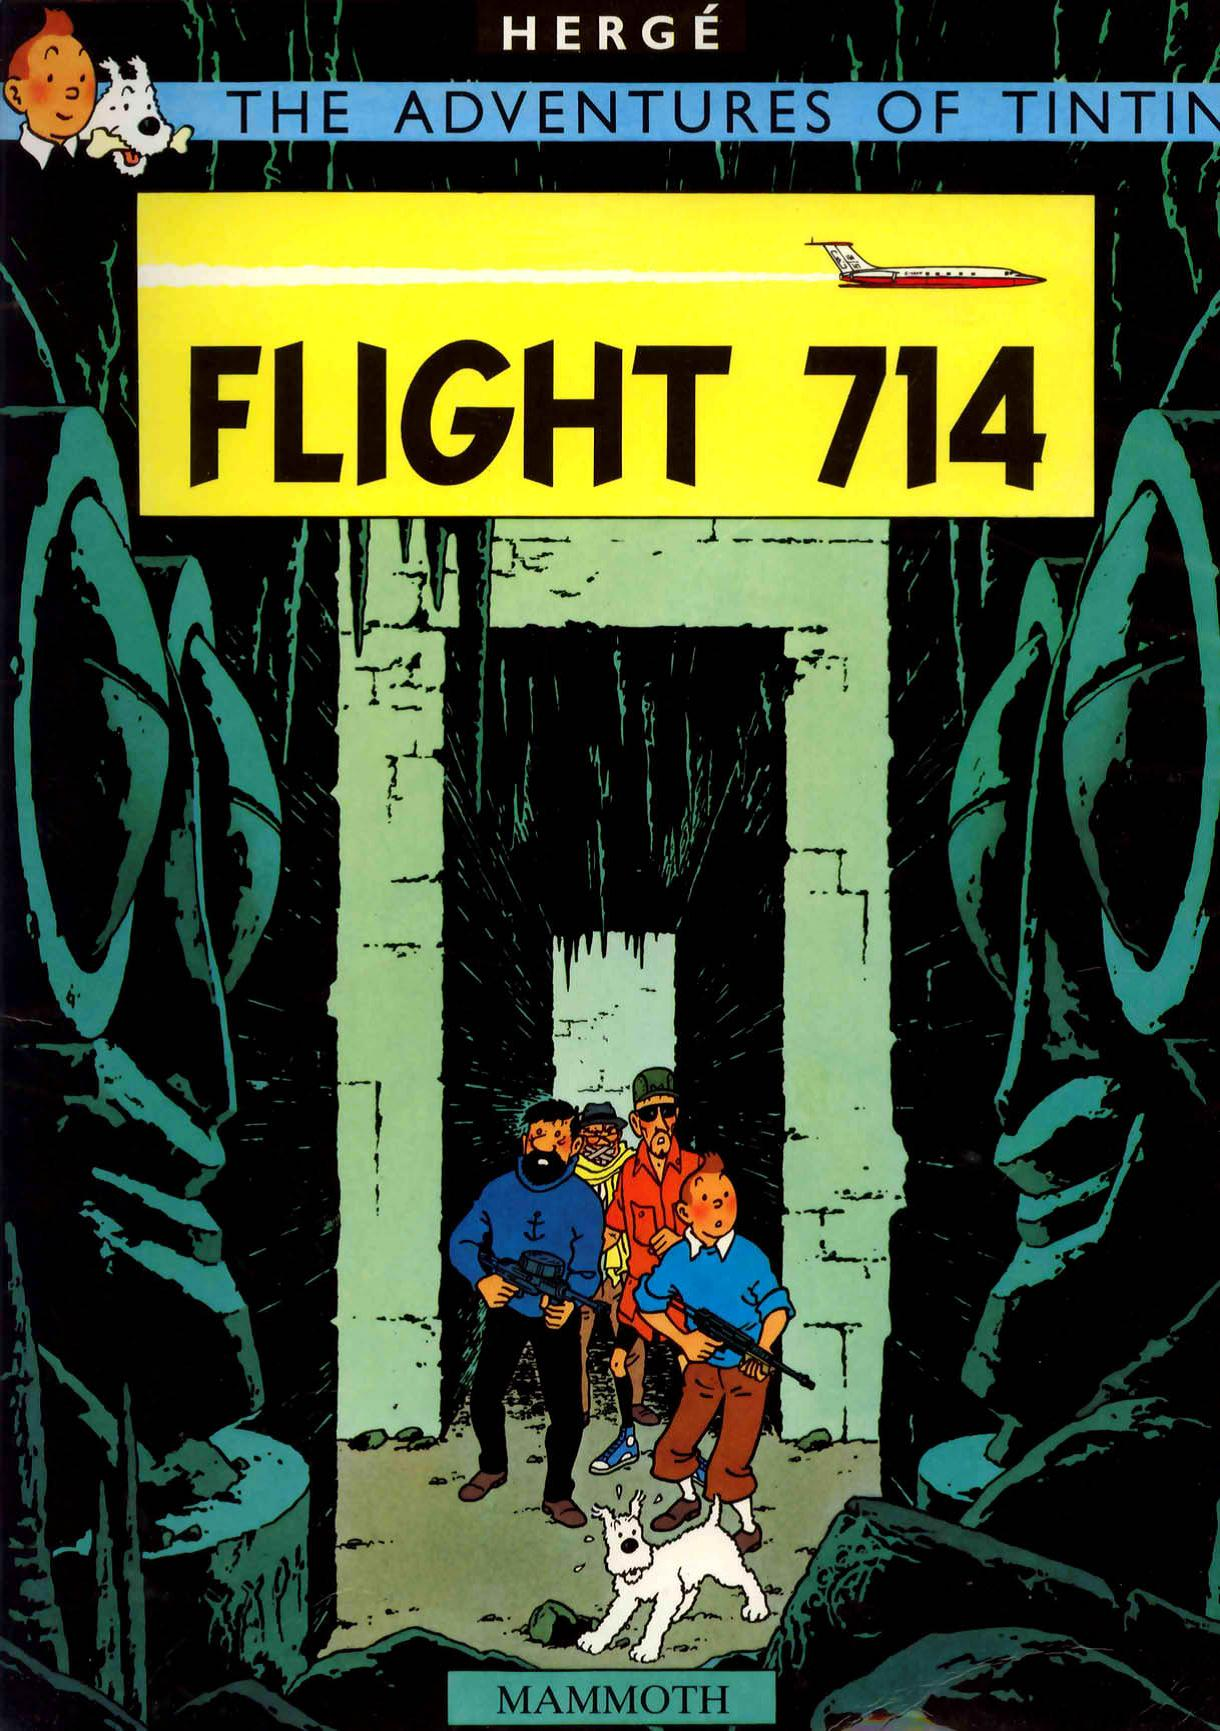 Flight 714, also known as Flight 714 to Sydney, is the twenty-second tale of The Adventures of Tintin released in 1968.